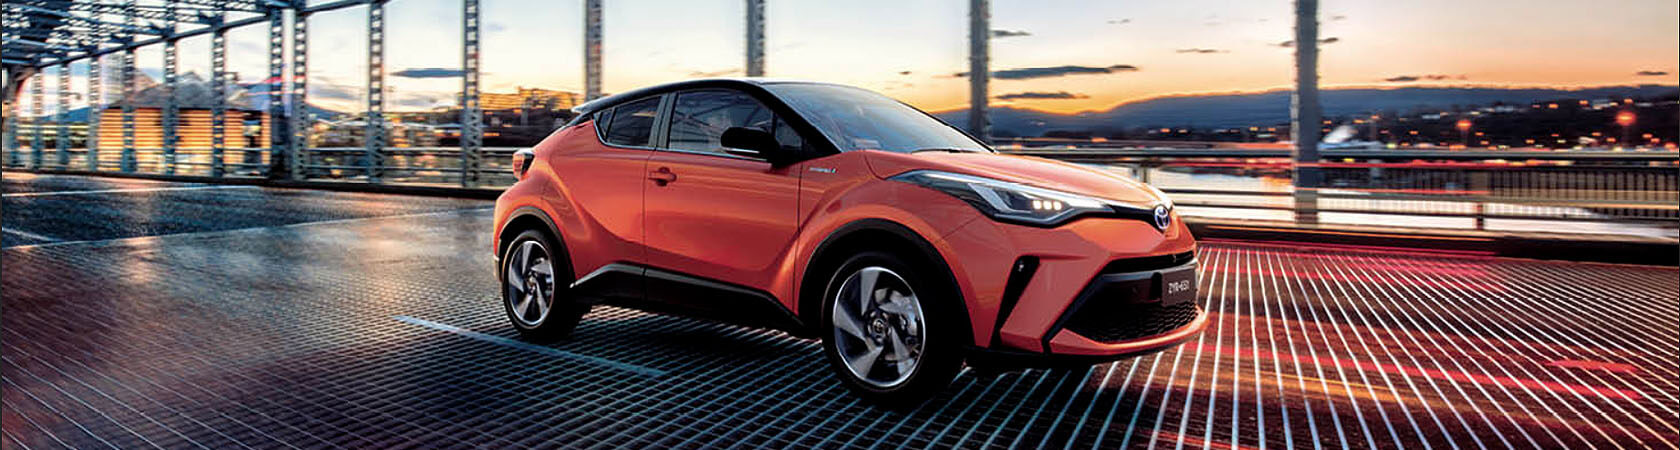 Windsor Toyota C-HR